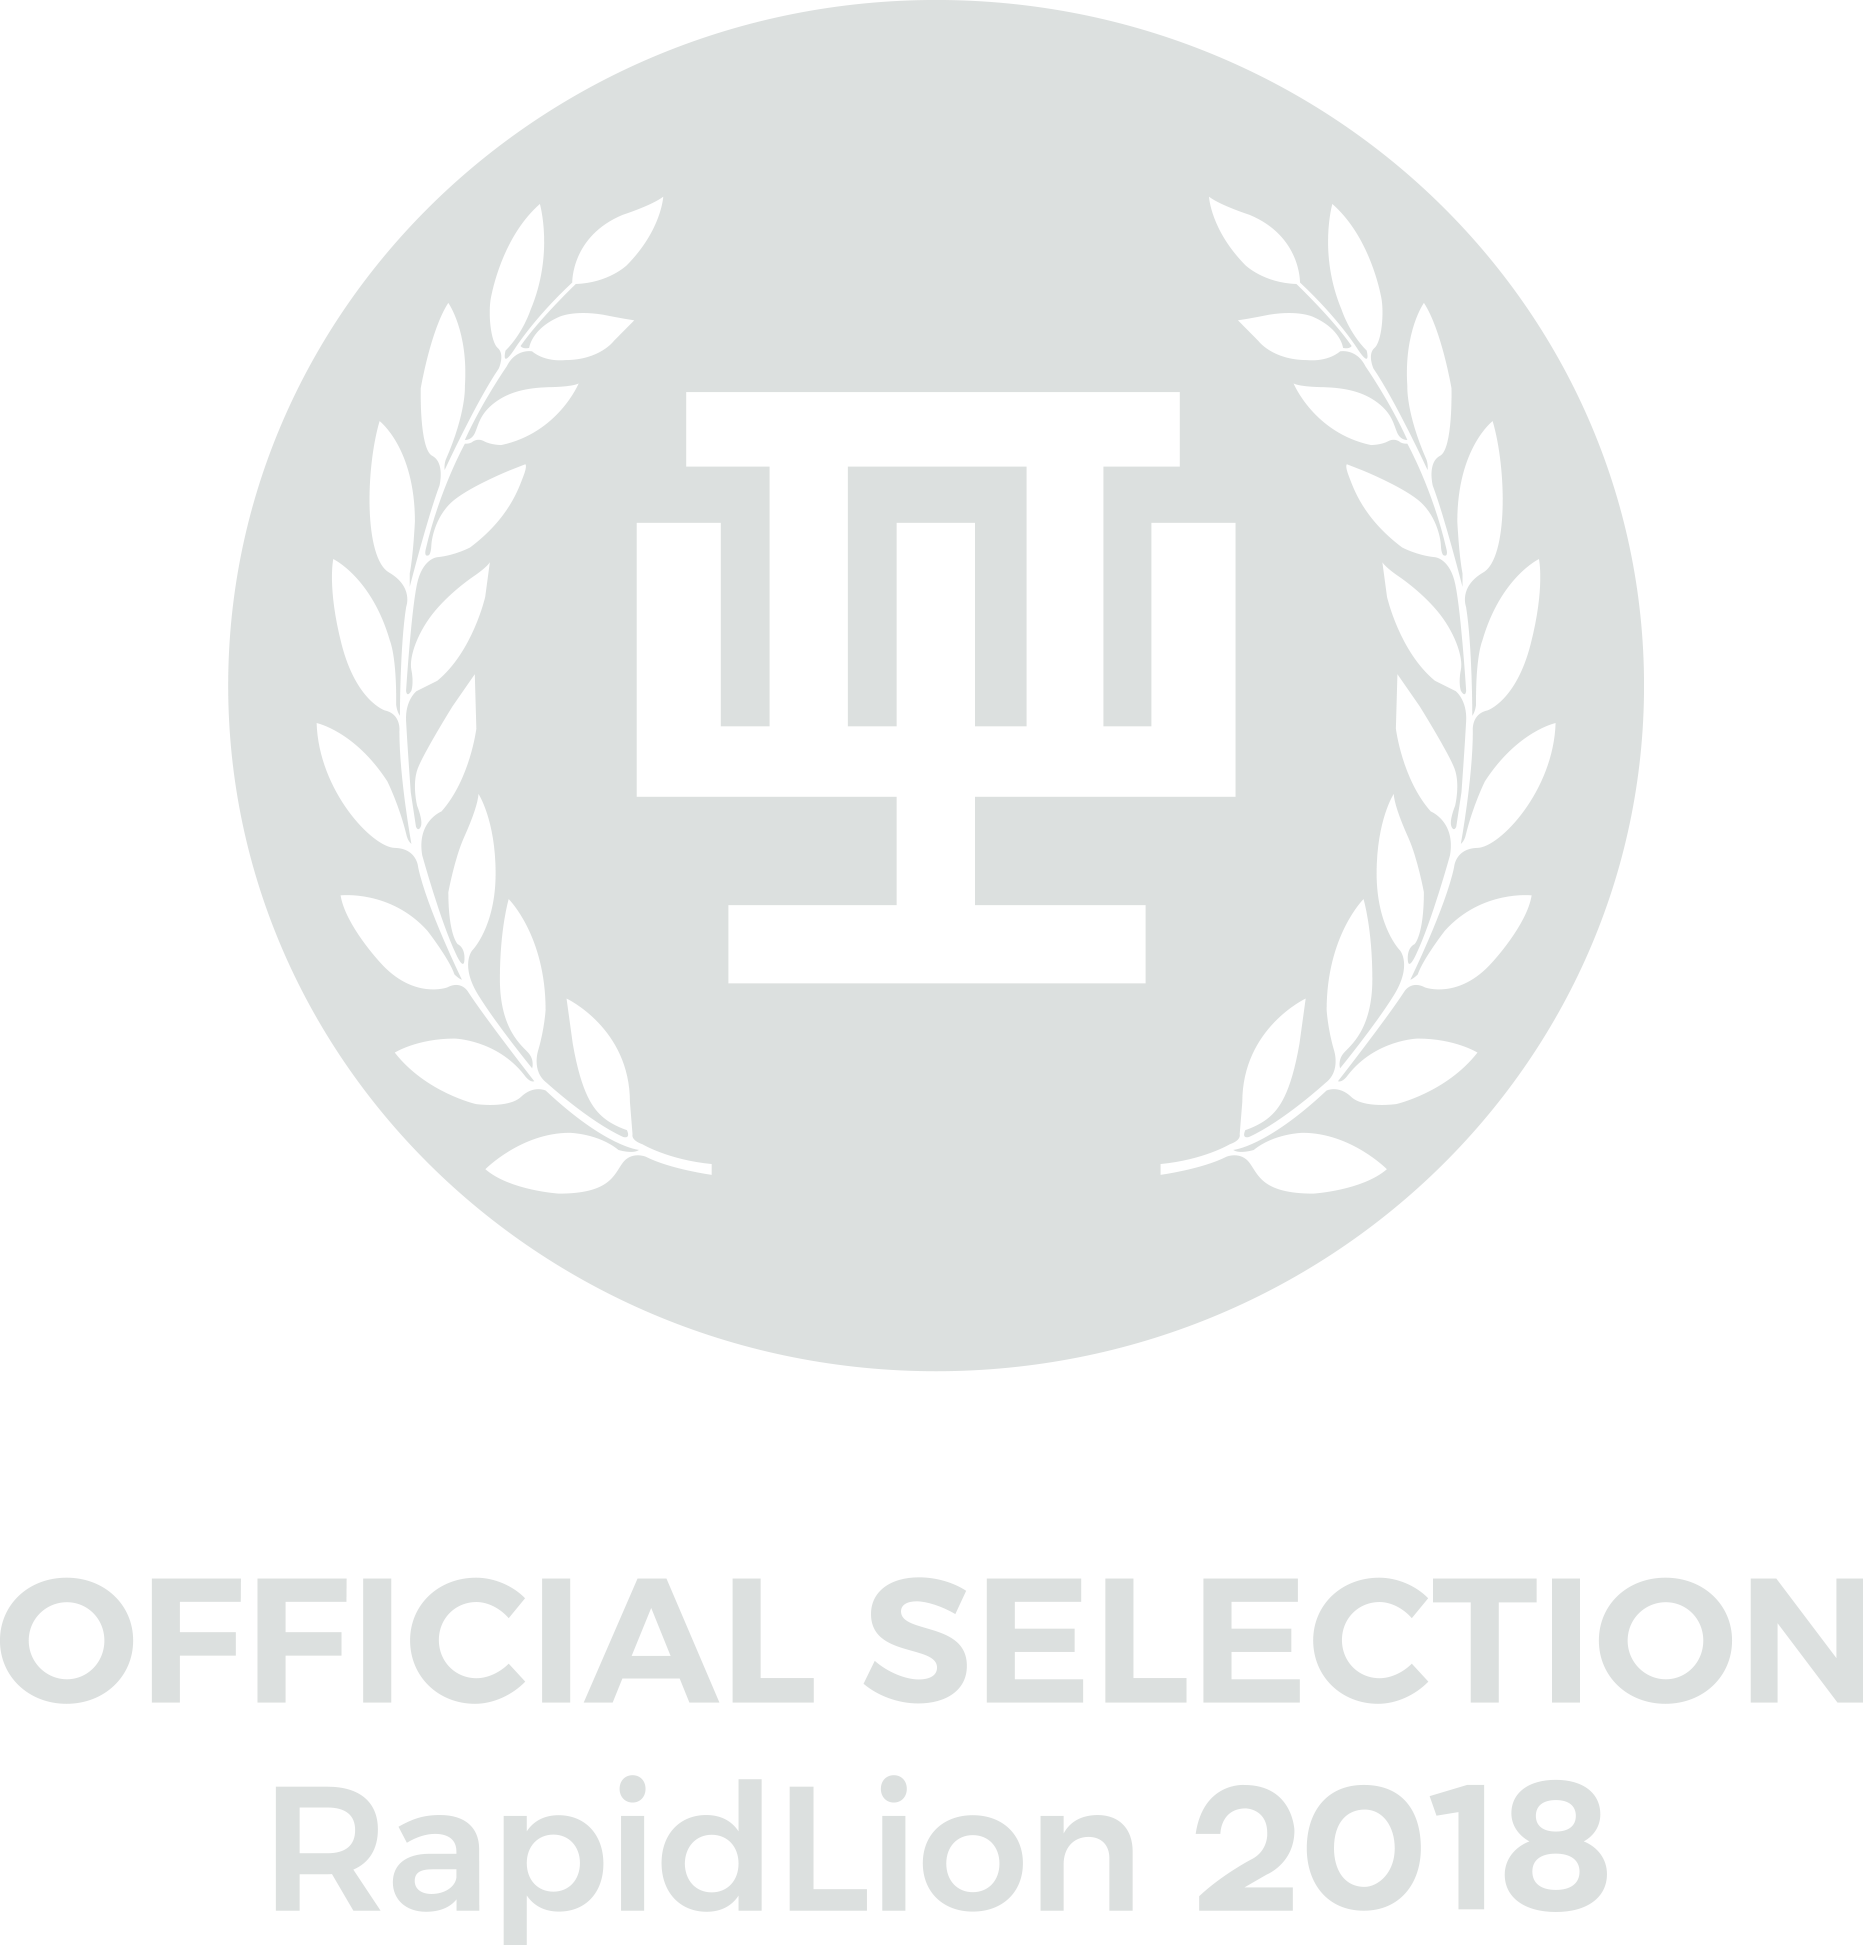 _witOFFICIAL SELECTION EMBLEM 2018